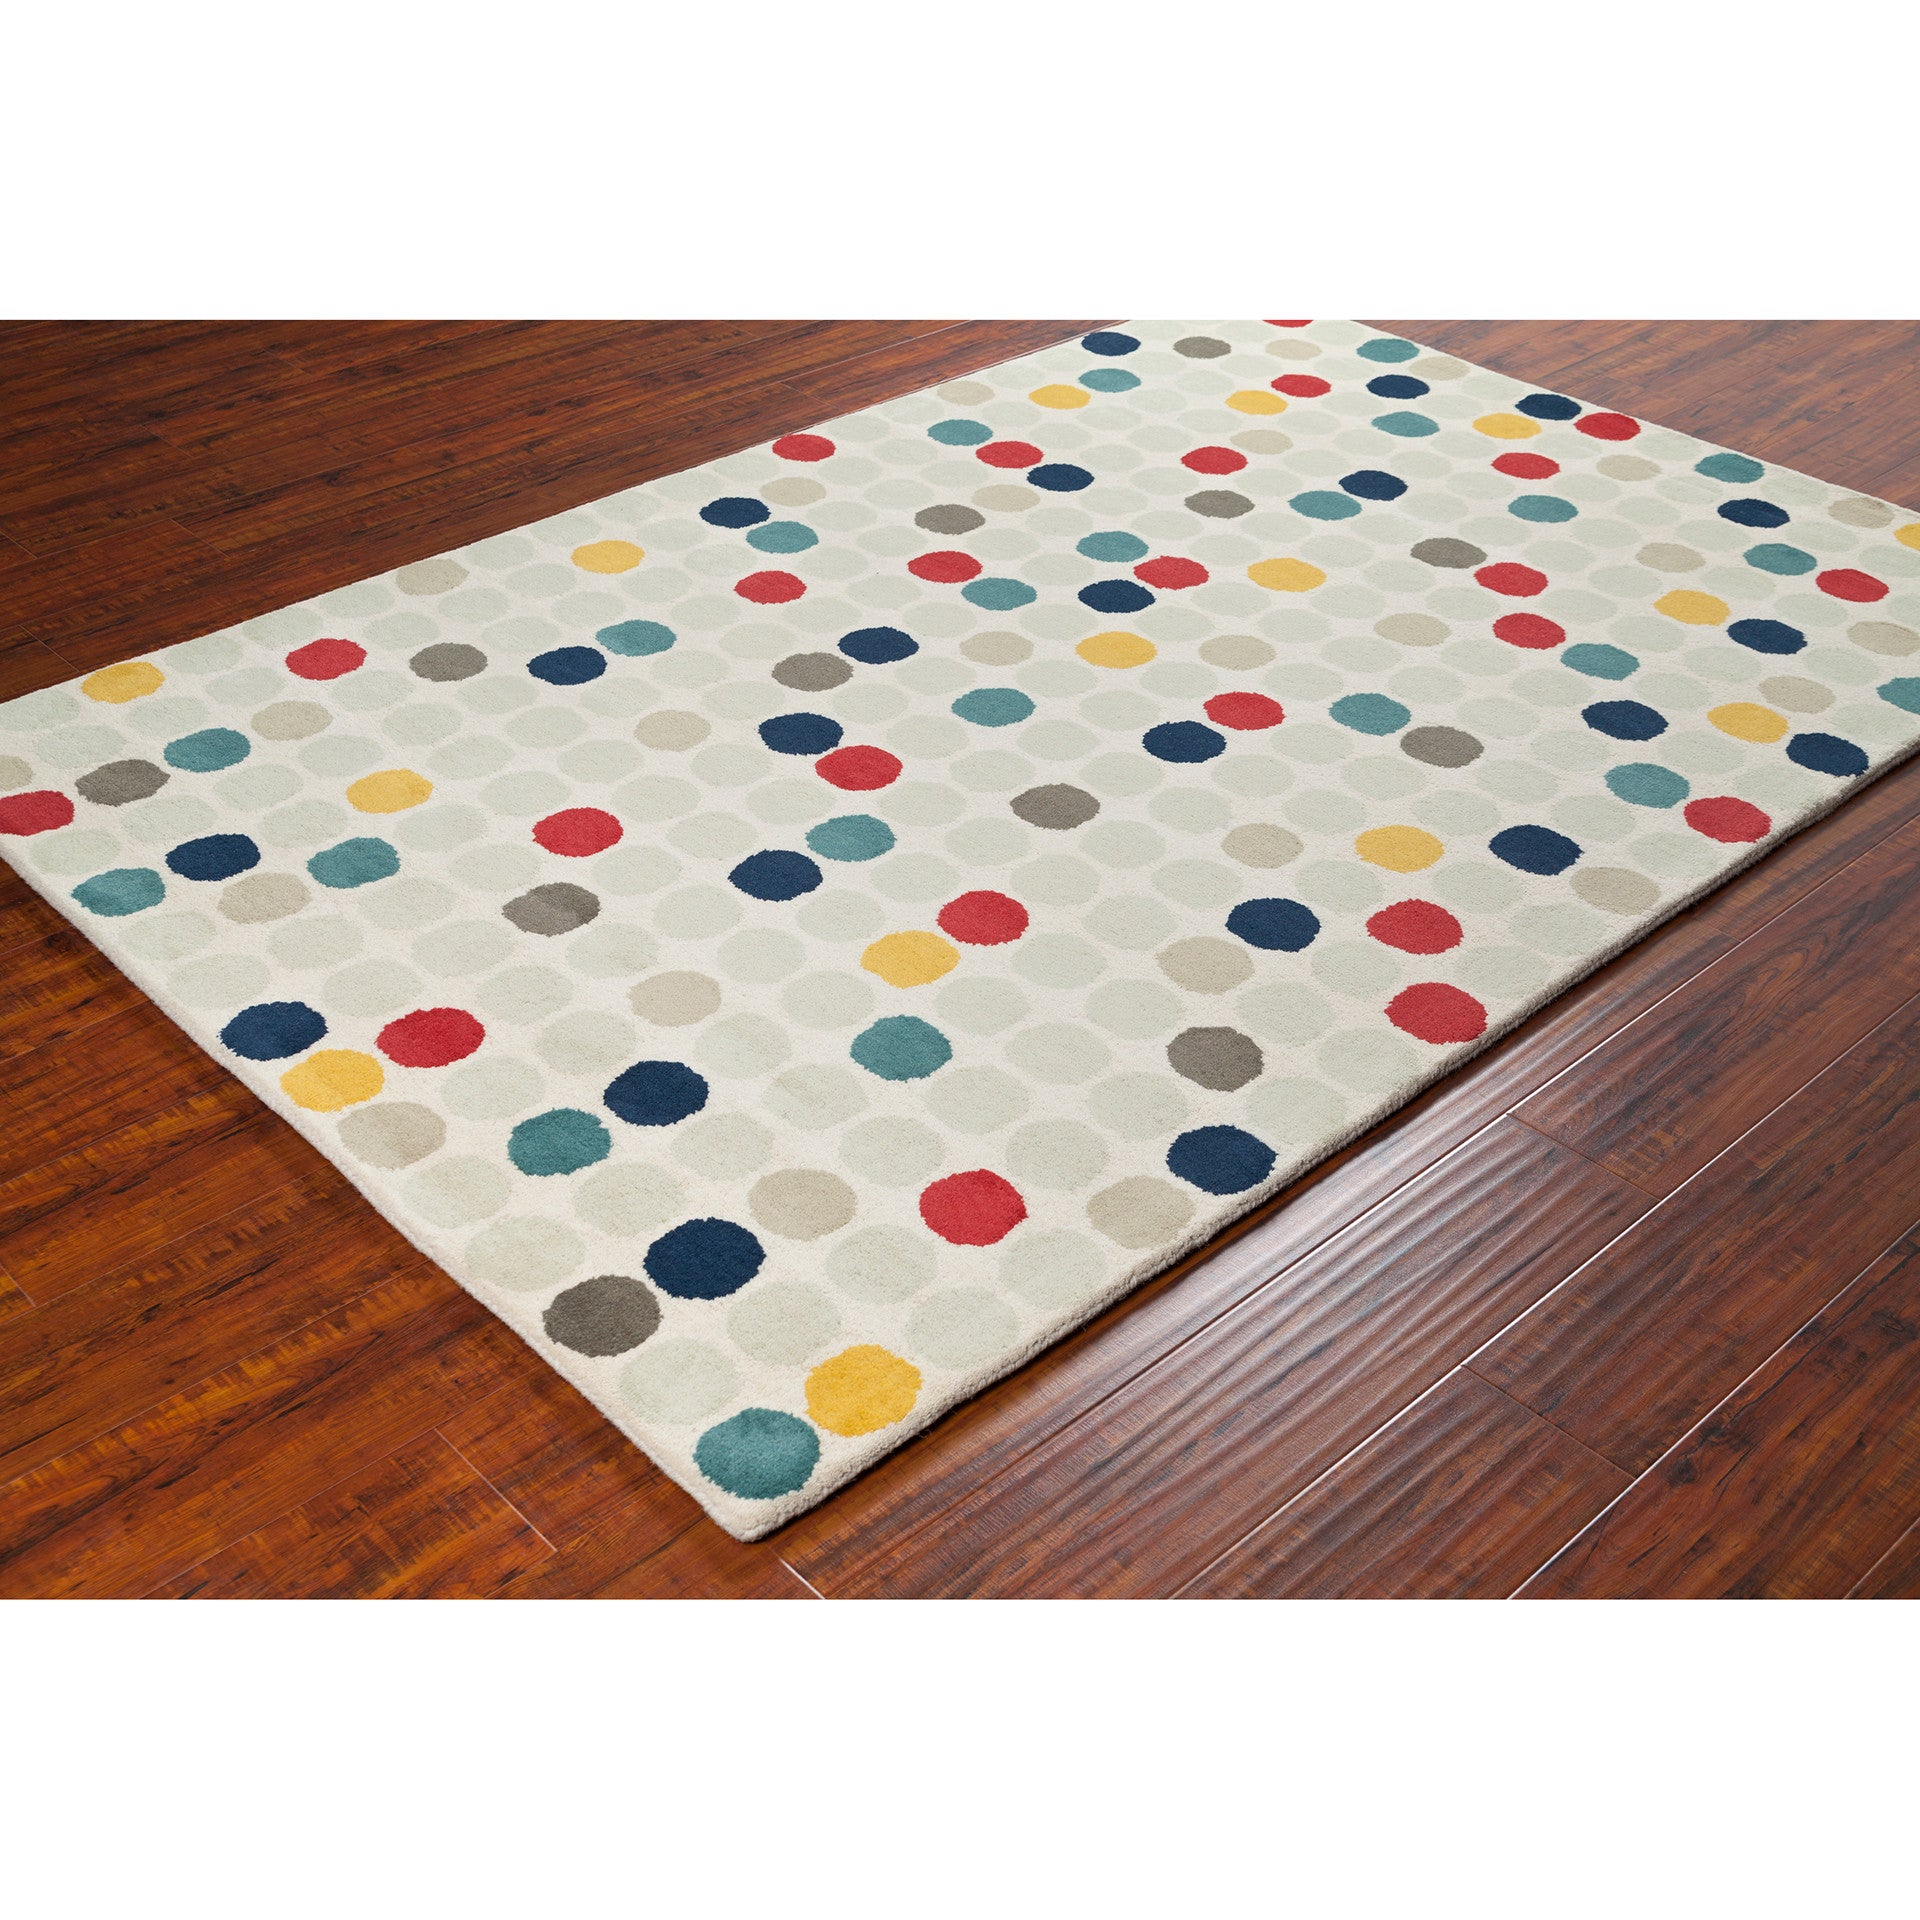 Stella Collection Hand Tufted Area Rug In Beige Light: Stella Collection Hand-Tufted Area Rug In Cream, Red